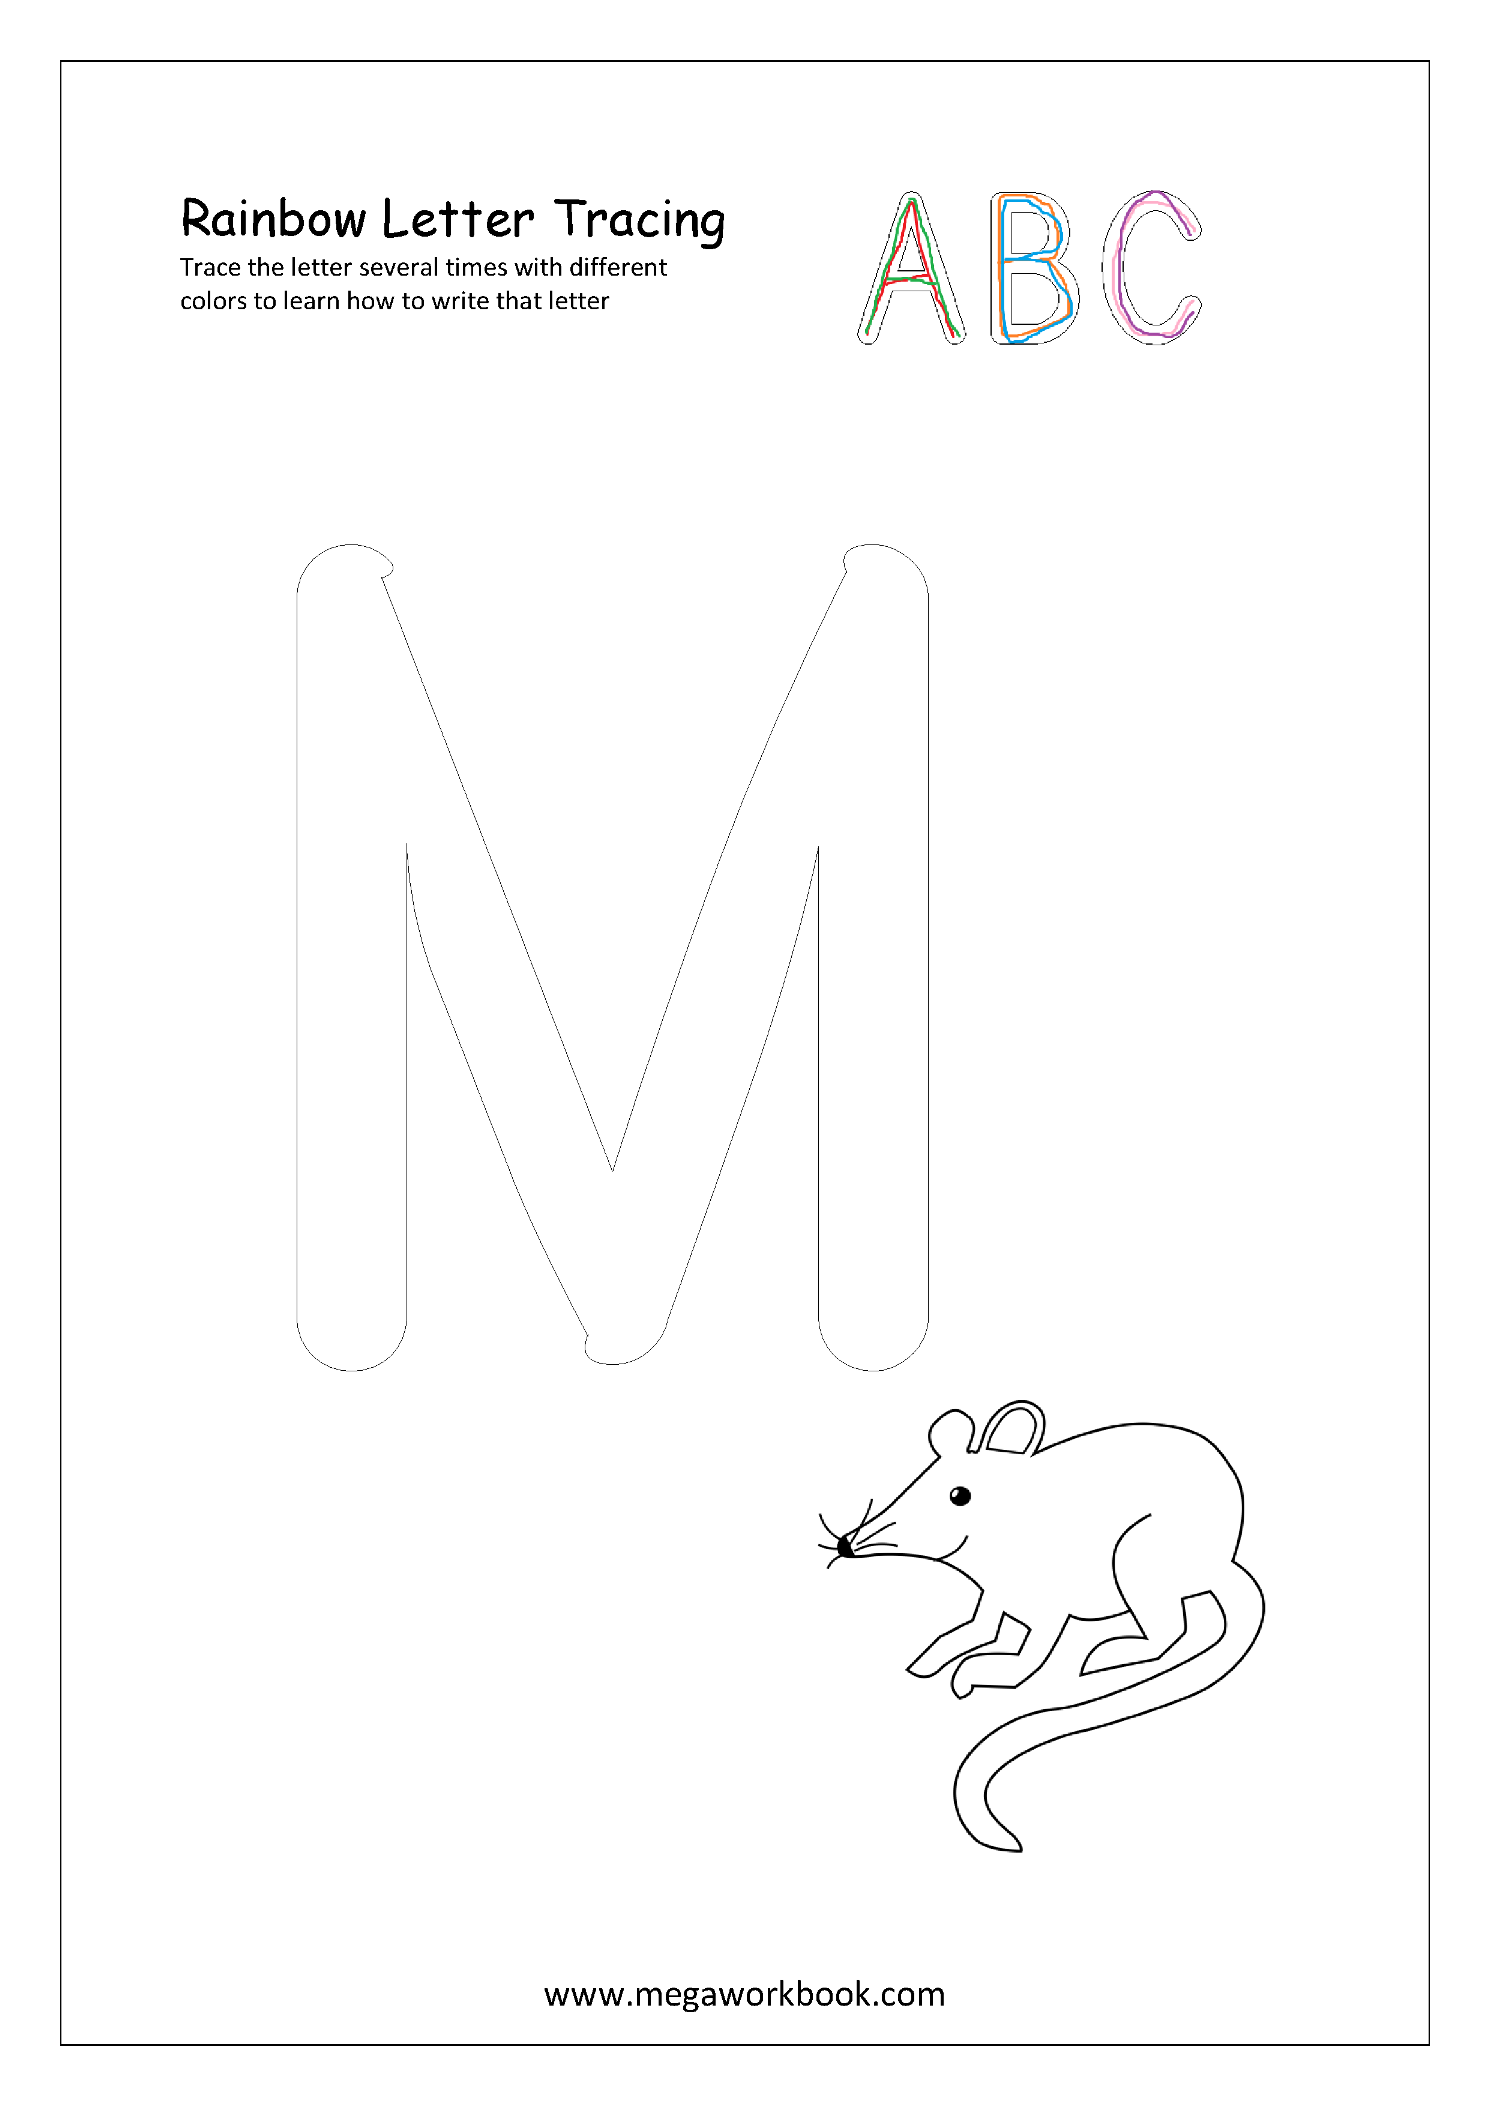 Rainbow Letter Tracing